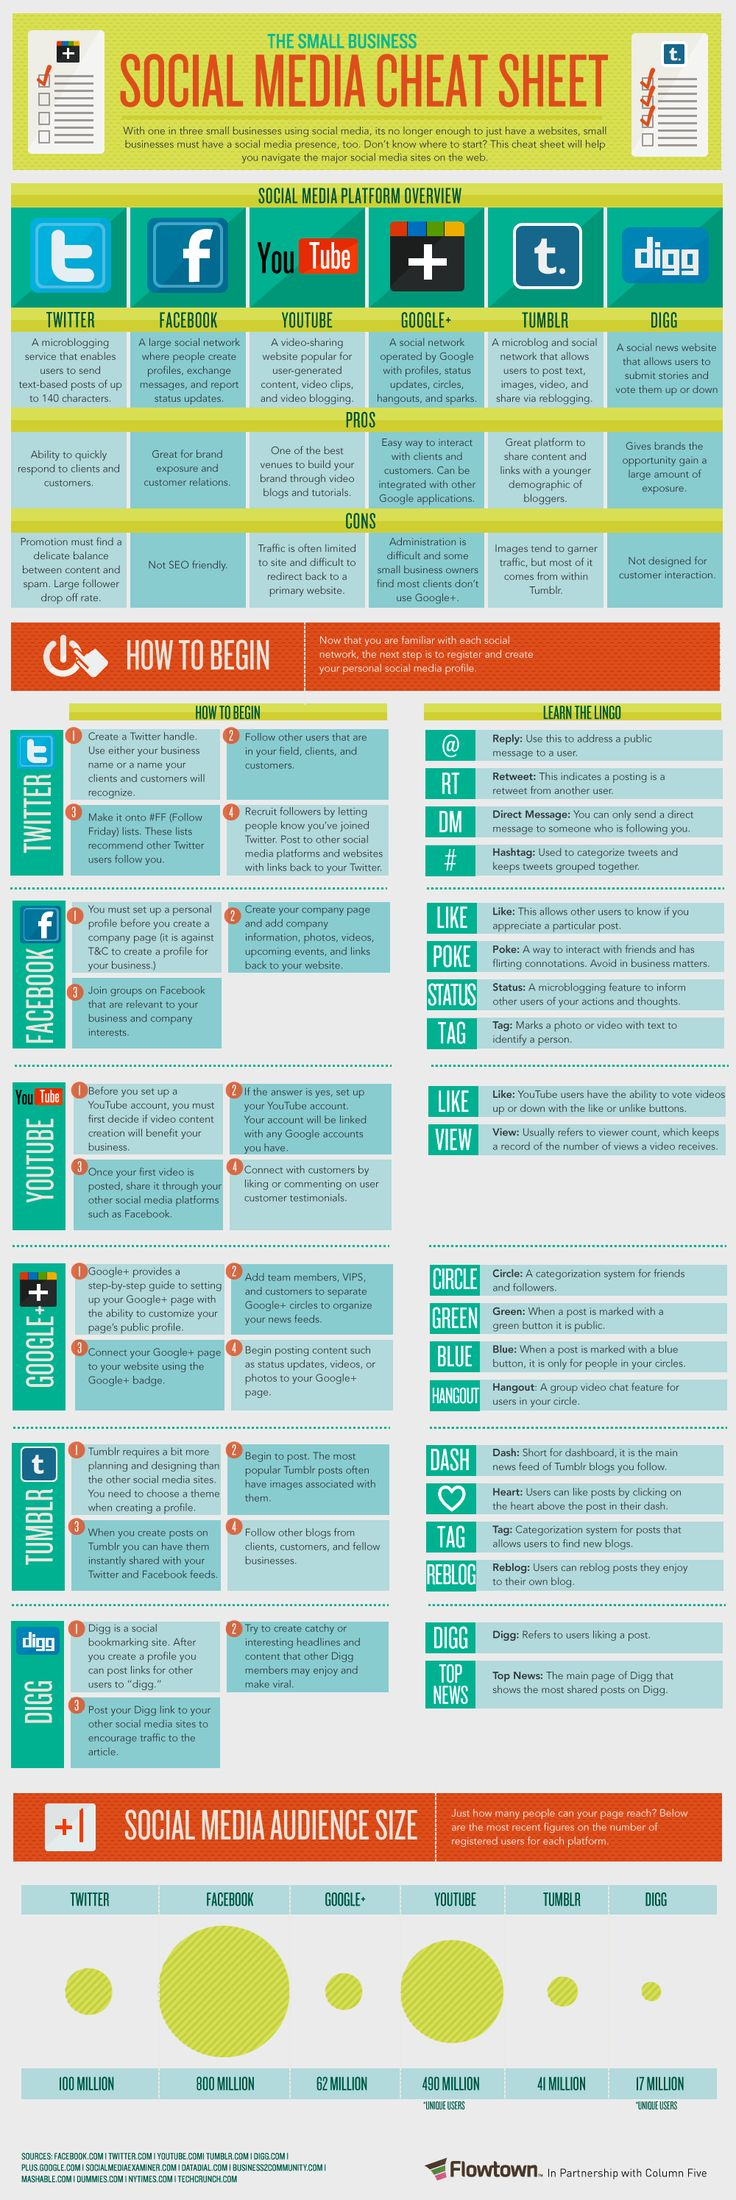 An awesome social media cheat sheet from Edudemic if you aren't clear on all of the social media terms and how to get started. Great tool.